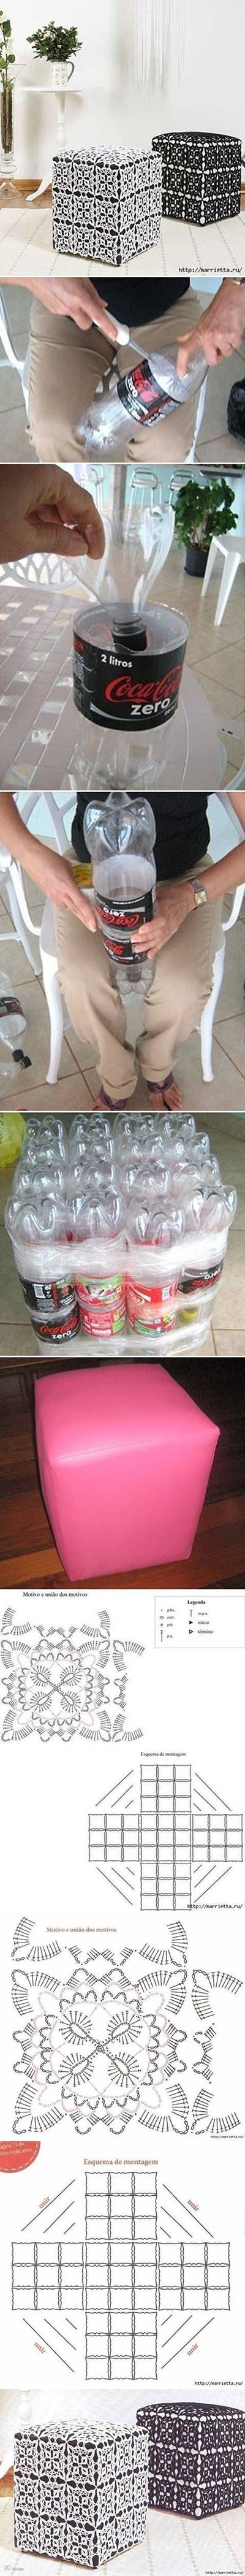 2  DIY Ottoman Out of Plastic Bottles99b5